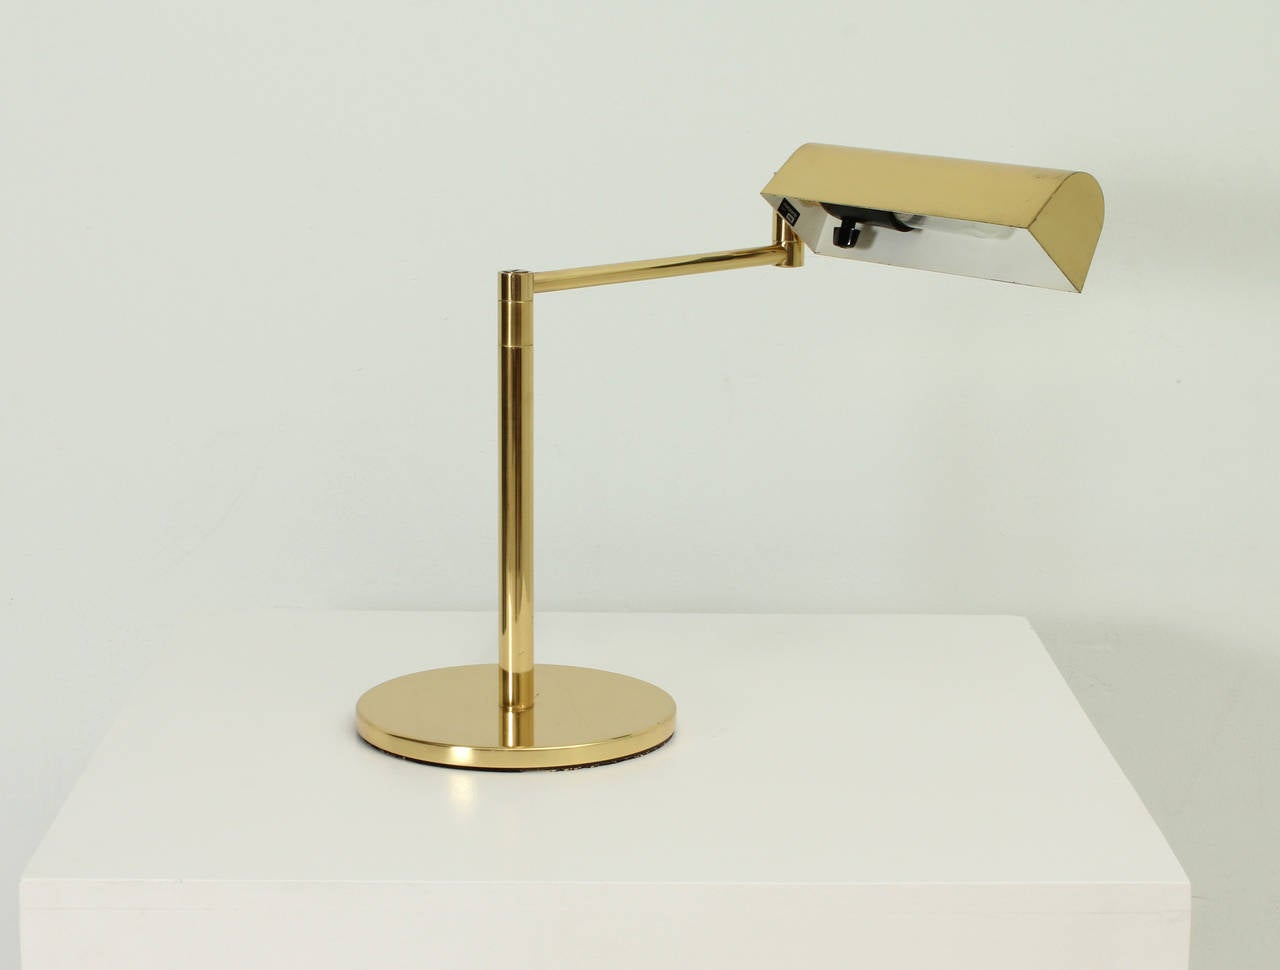 swing arm table lamp by george hansen at 1stdibs. Black Bedroom Furniture Sets. Home Design Ideas